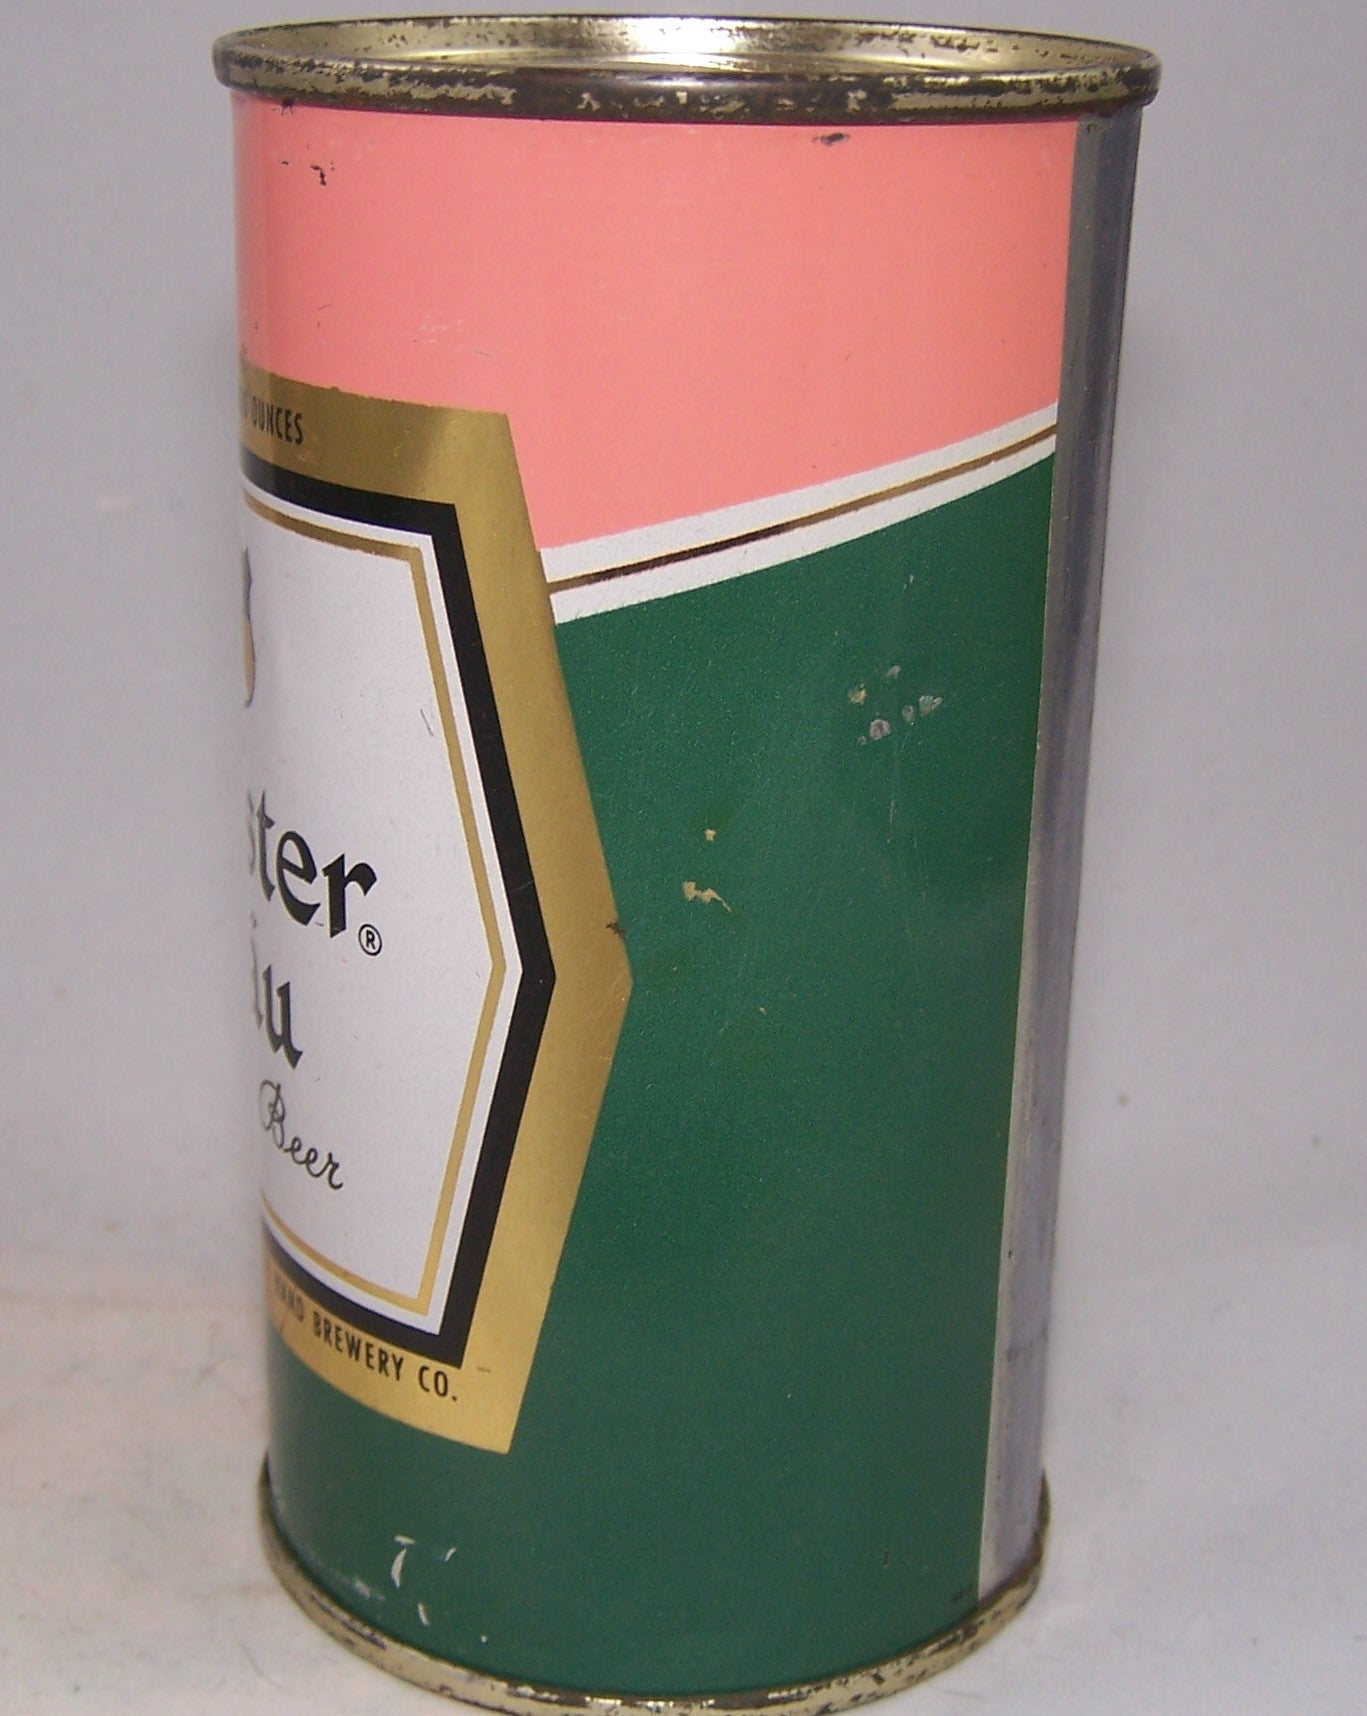 Meister Brau Pastel Set can, Art Decco, USBC 98-11, Grade 1 Sold on 12/07/15